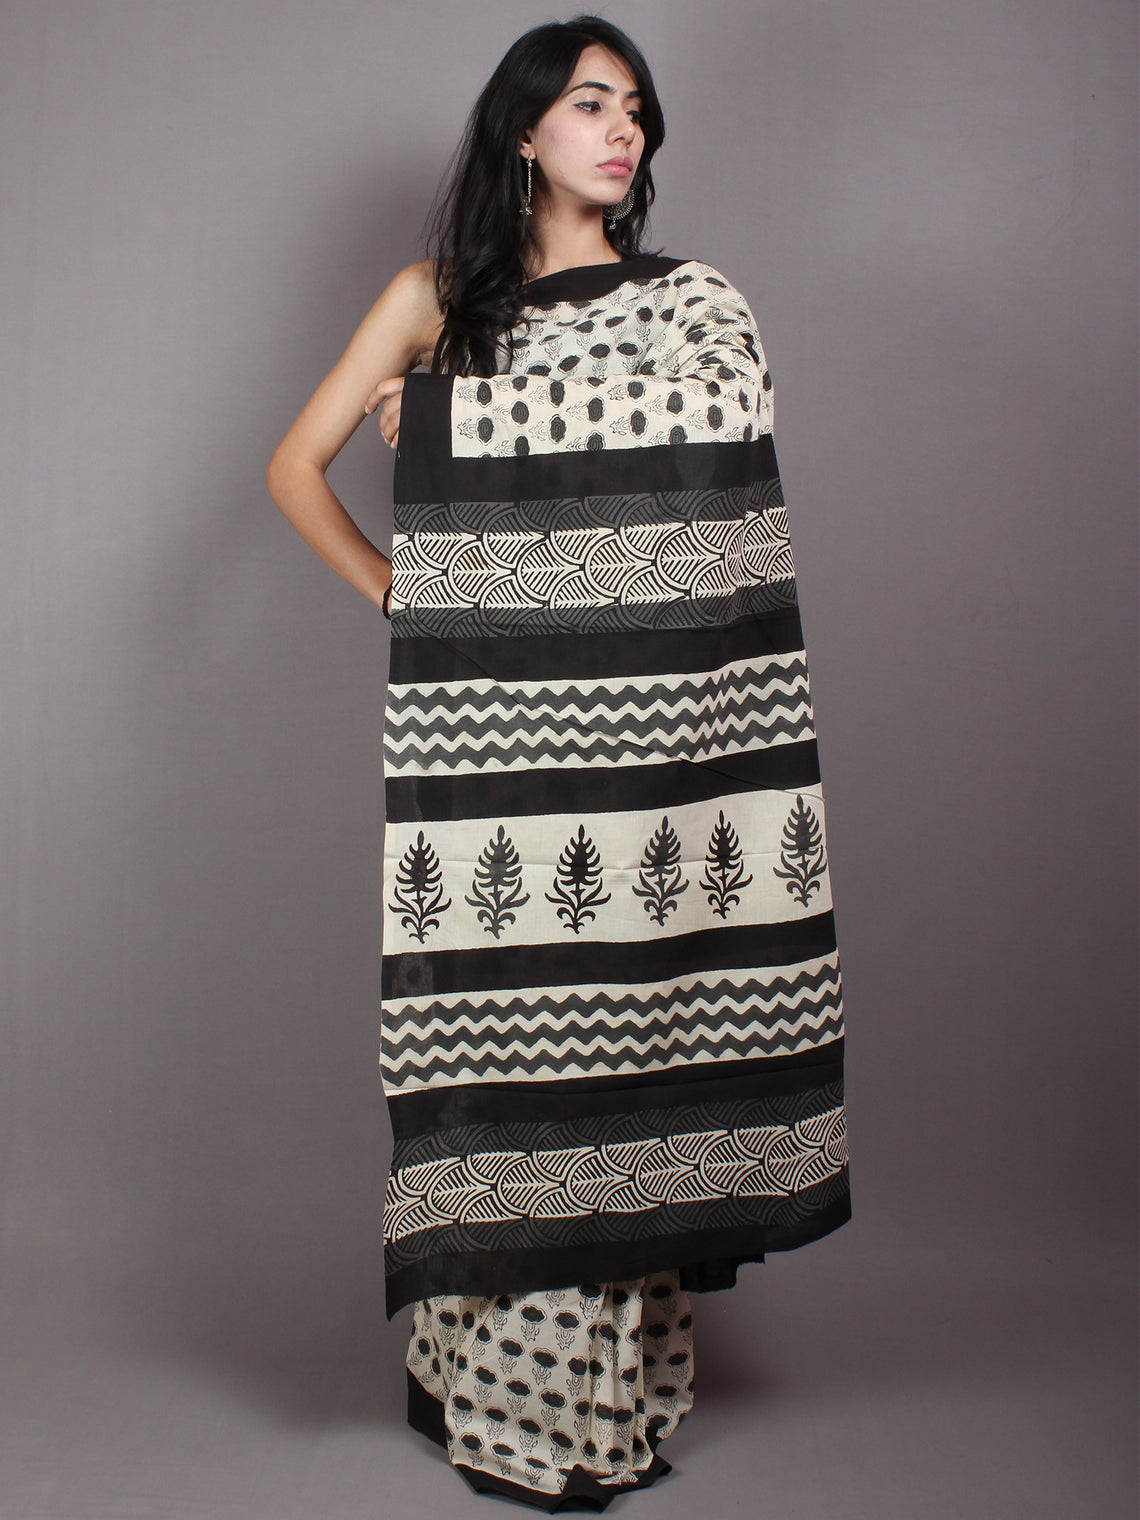 Ivory Black Cotton Hand Block Printed Saree in Natural Colors - S03170530